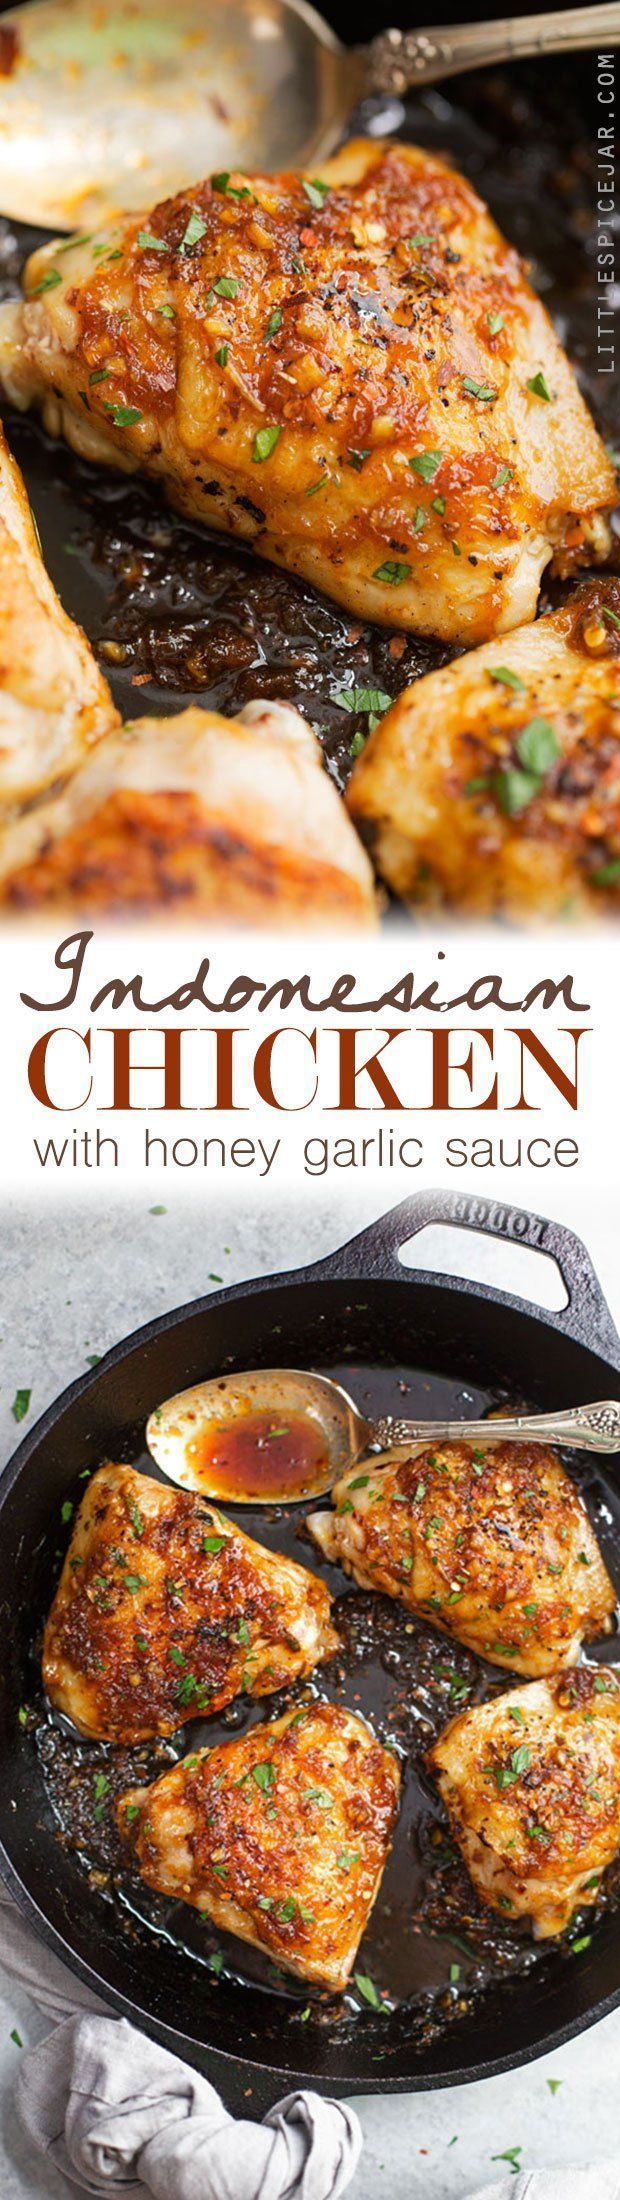 Indonesian Honey Garlic Chicken - Simple chicken thighs spiced up with a homemade honey garlic sauce! #chickenthighs #chicken #honeygarlicchicken | http://Littlespicejar.com